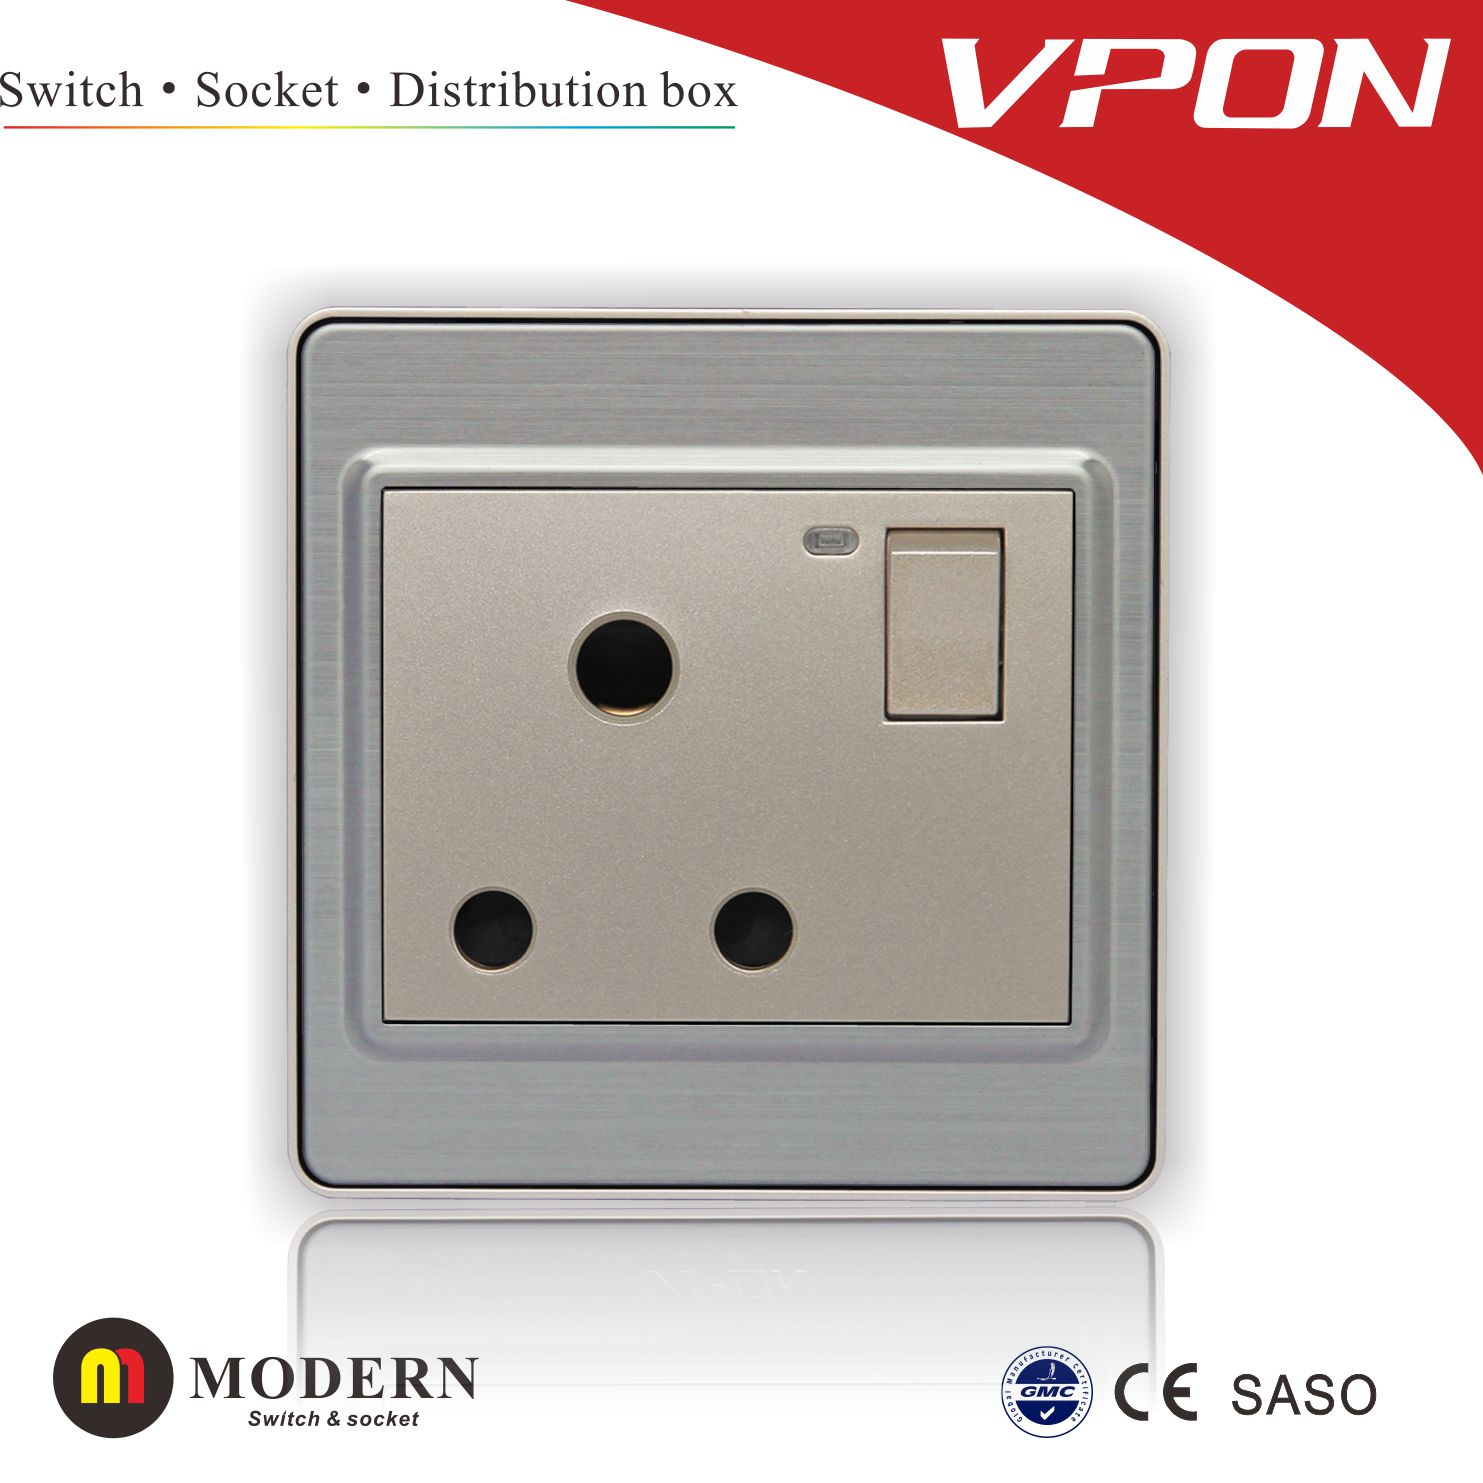 15A 3 round pin socket switch